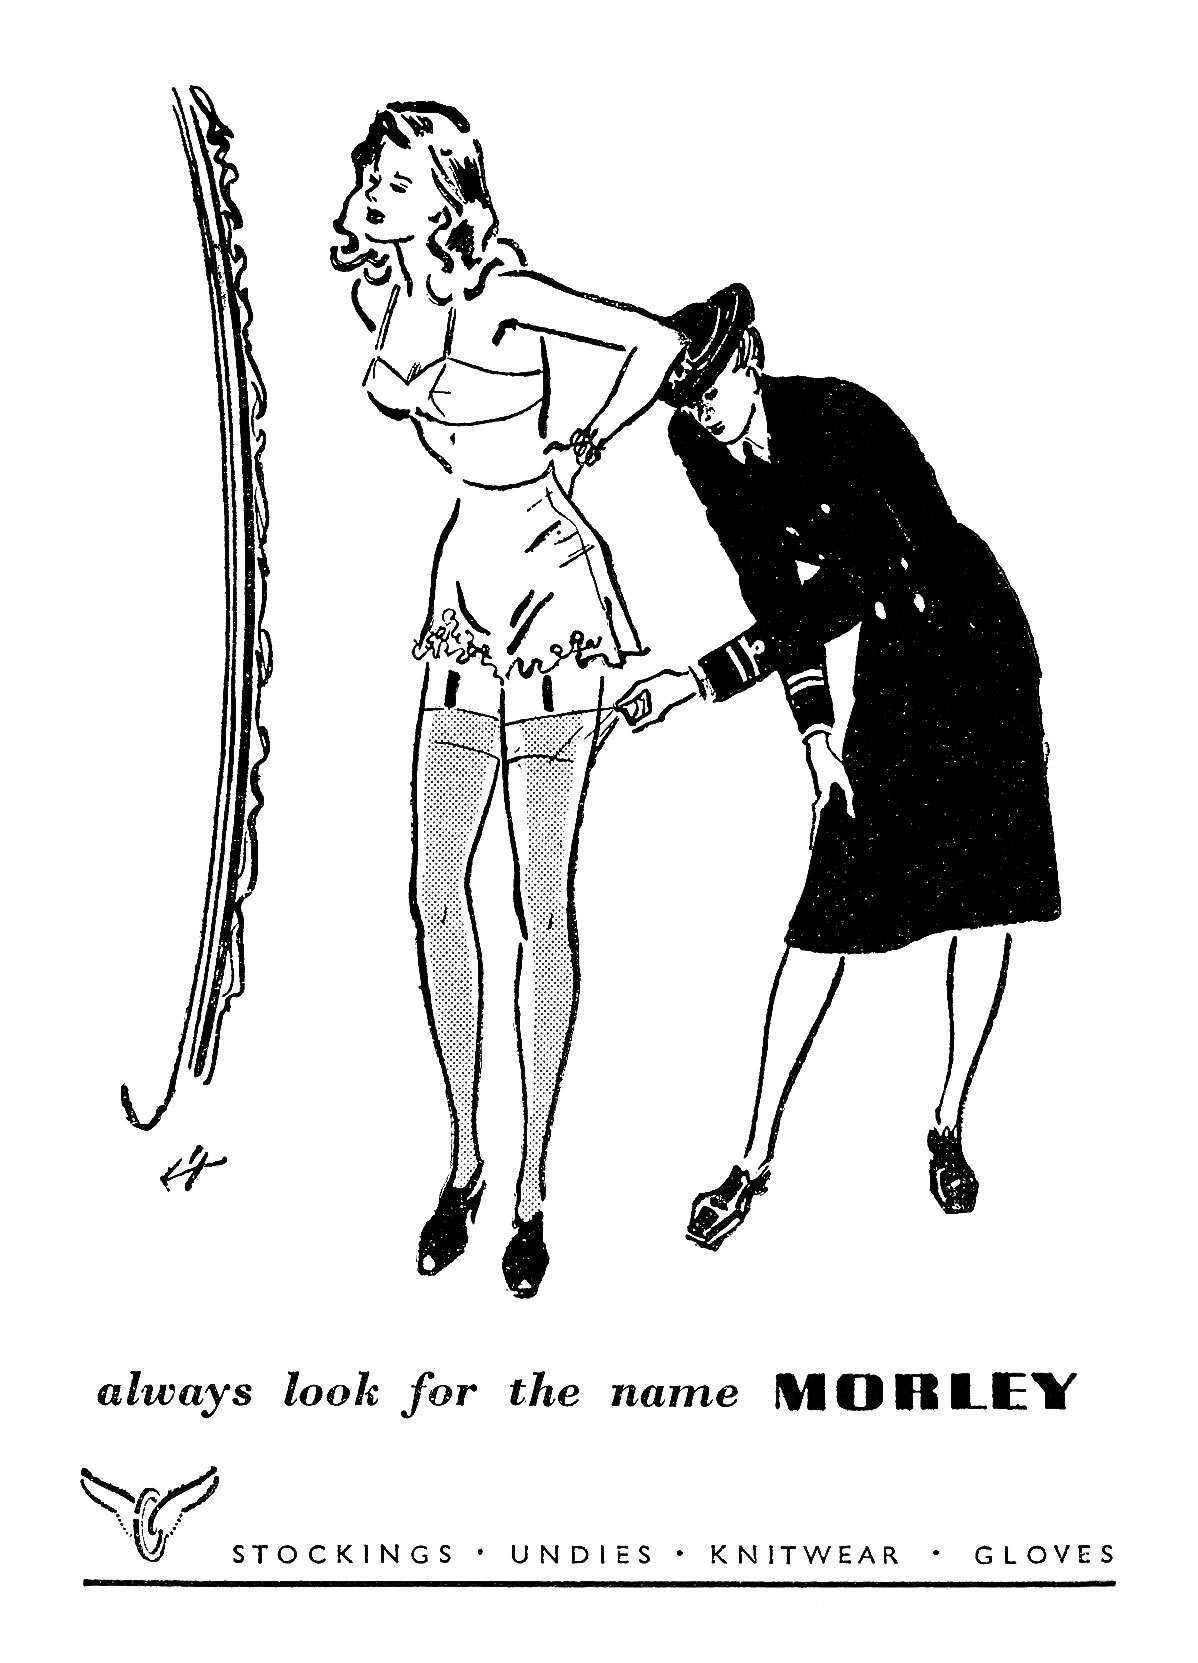 1944 Morley Stockings ad